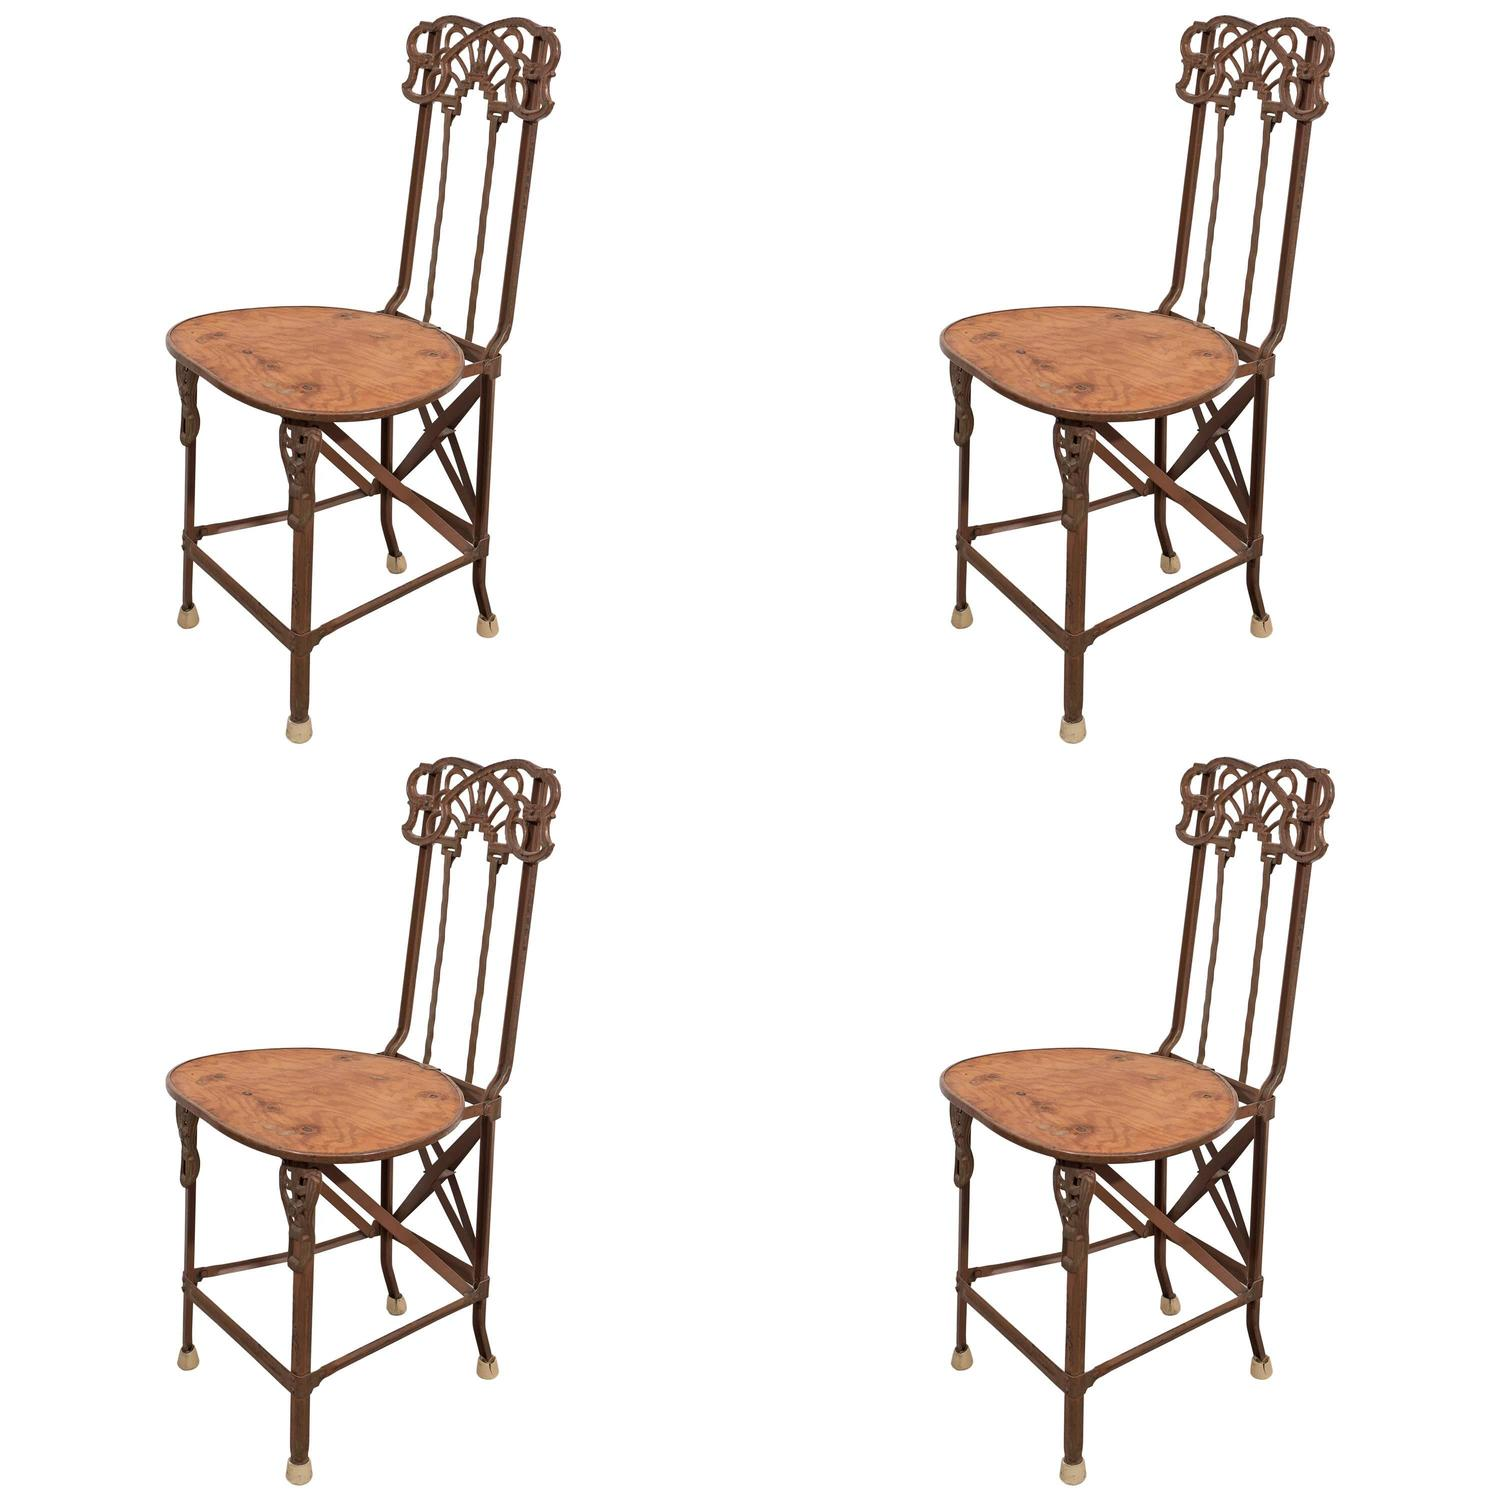 modern art nouveau furniture. Set Of Four Art Nouveau Cast Iron Folding Chairs With Wood Seats For Sale At 1stdibs Modern Furniture